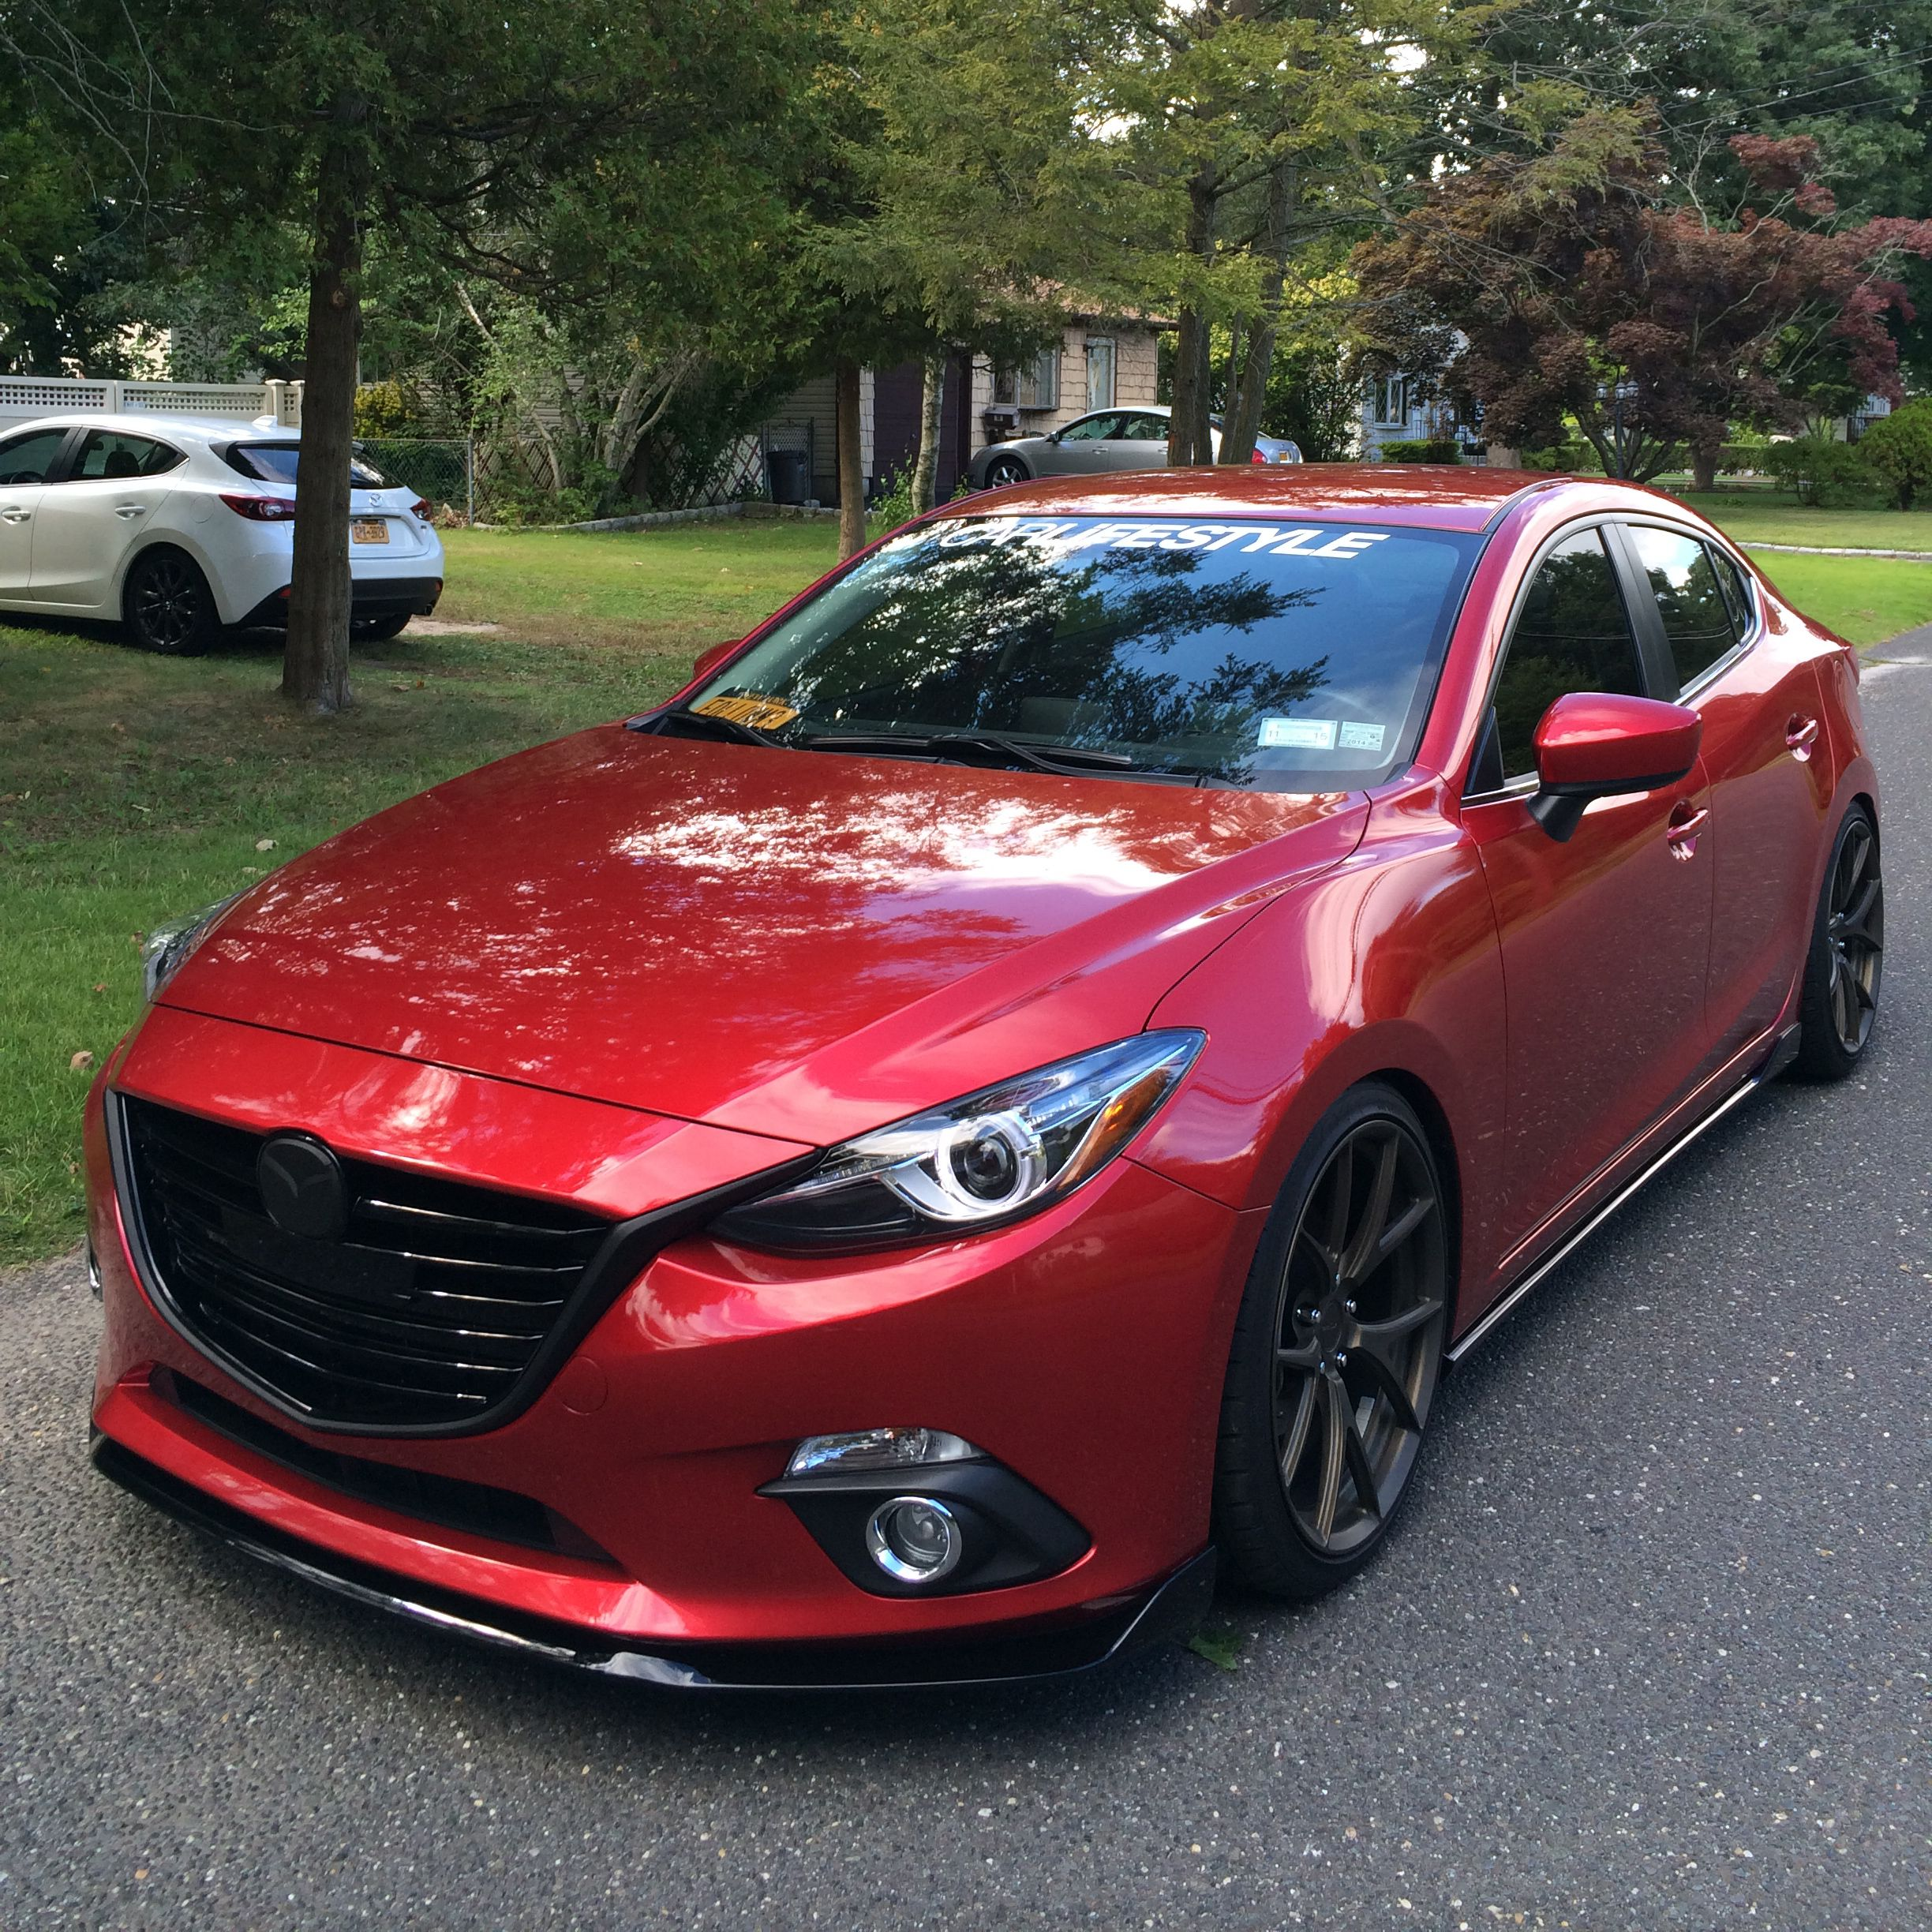 2004 to 2016 mazda 3 forum and mazdaspeed 3 forums view for Mazdaspeed 6 exterior mods